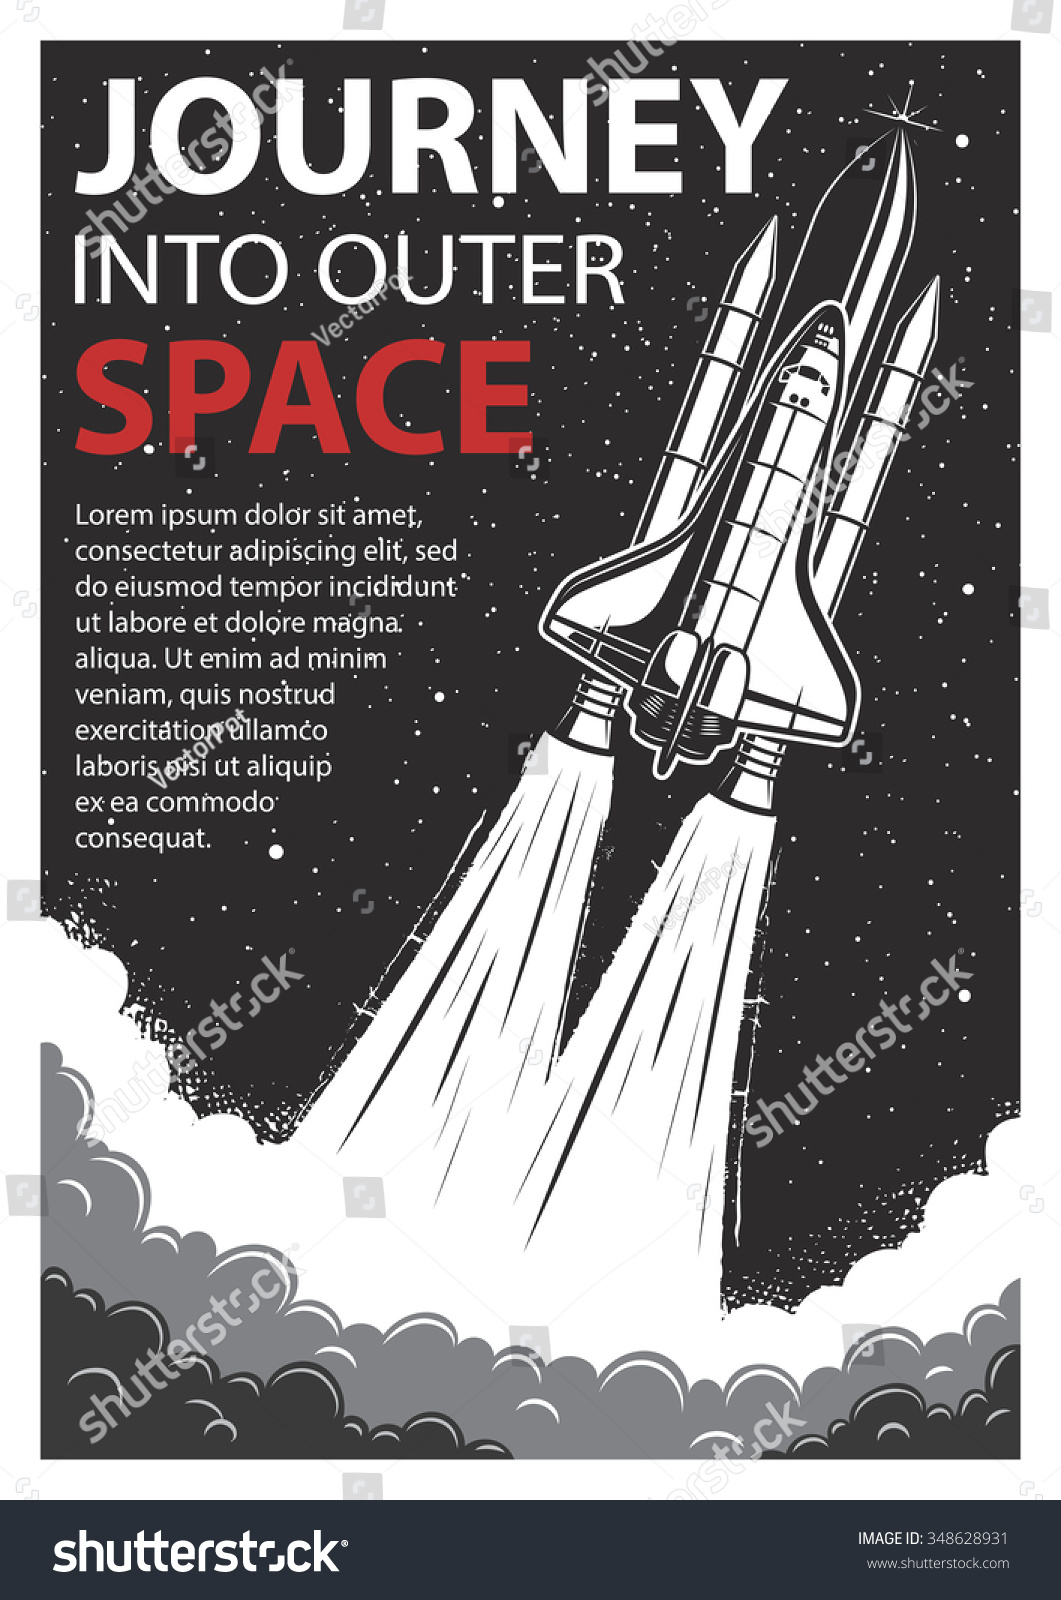 Vintage poster with shuttle launch on a grunge background Space theme Motivation poster